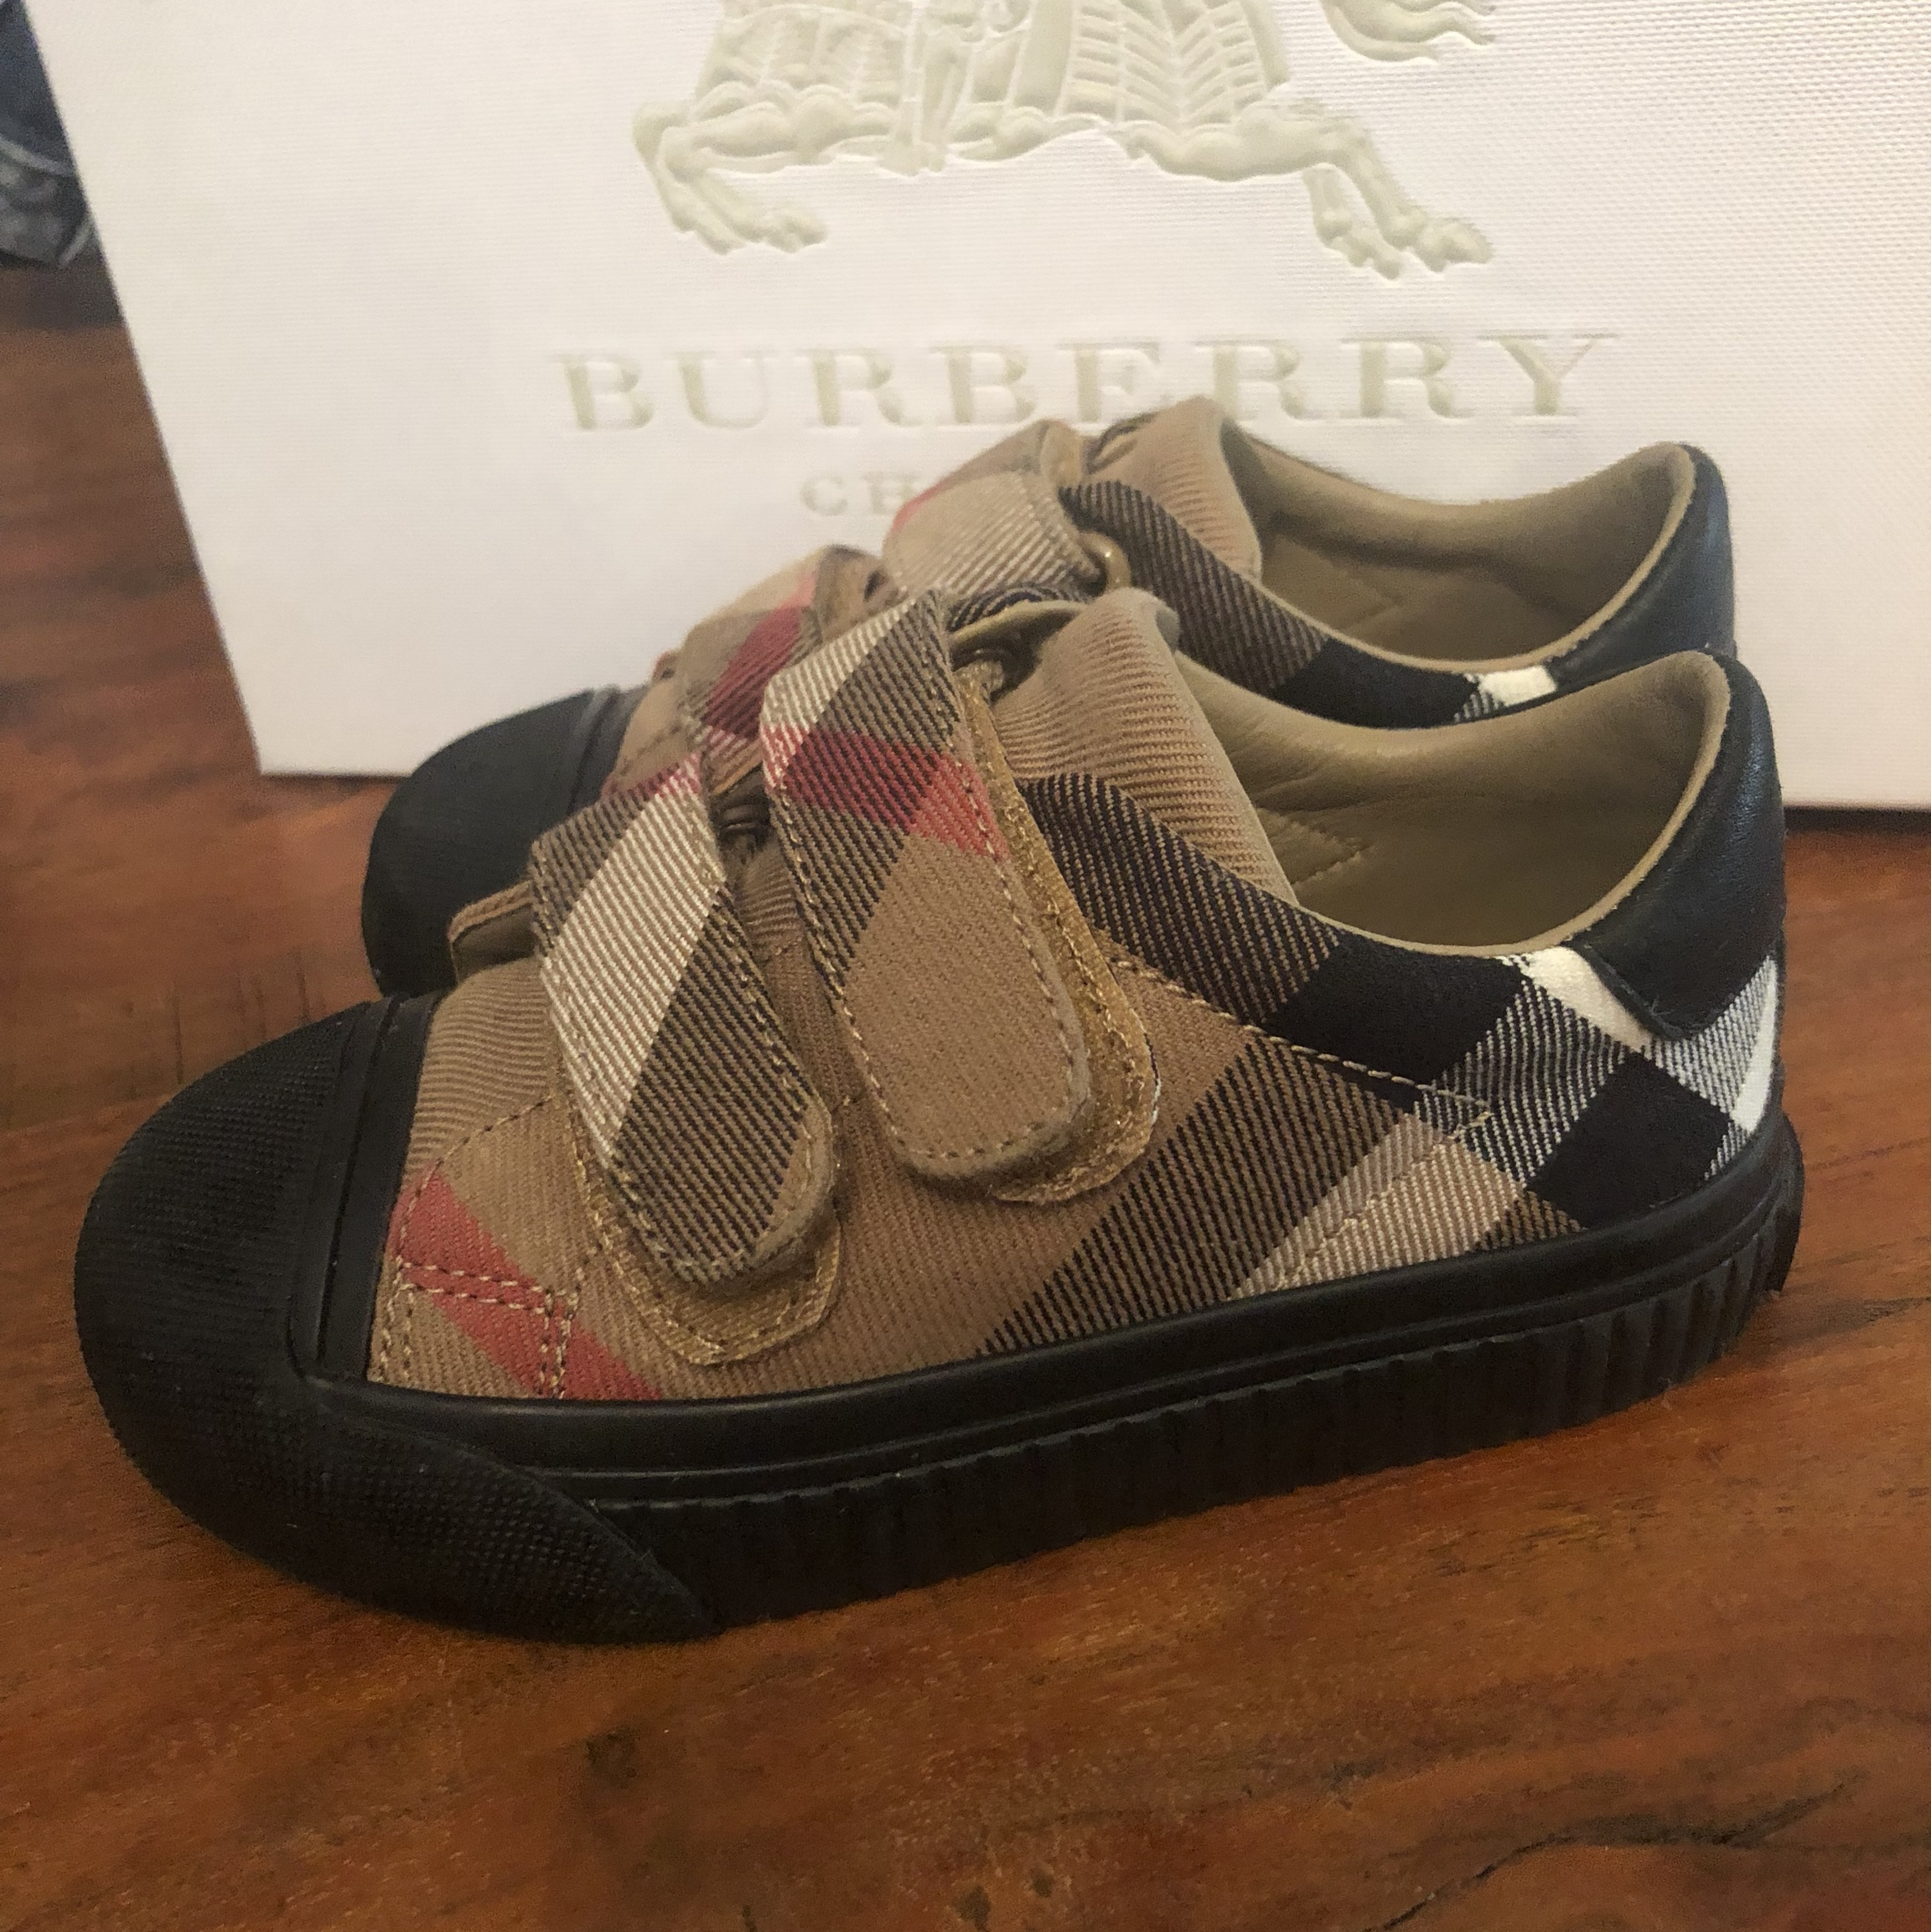 Burberry kids unisex trainers shoes